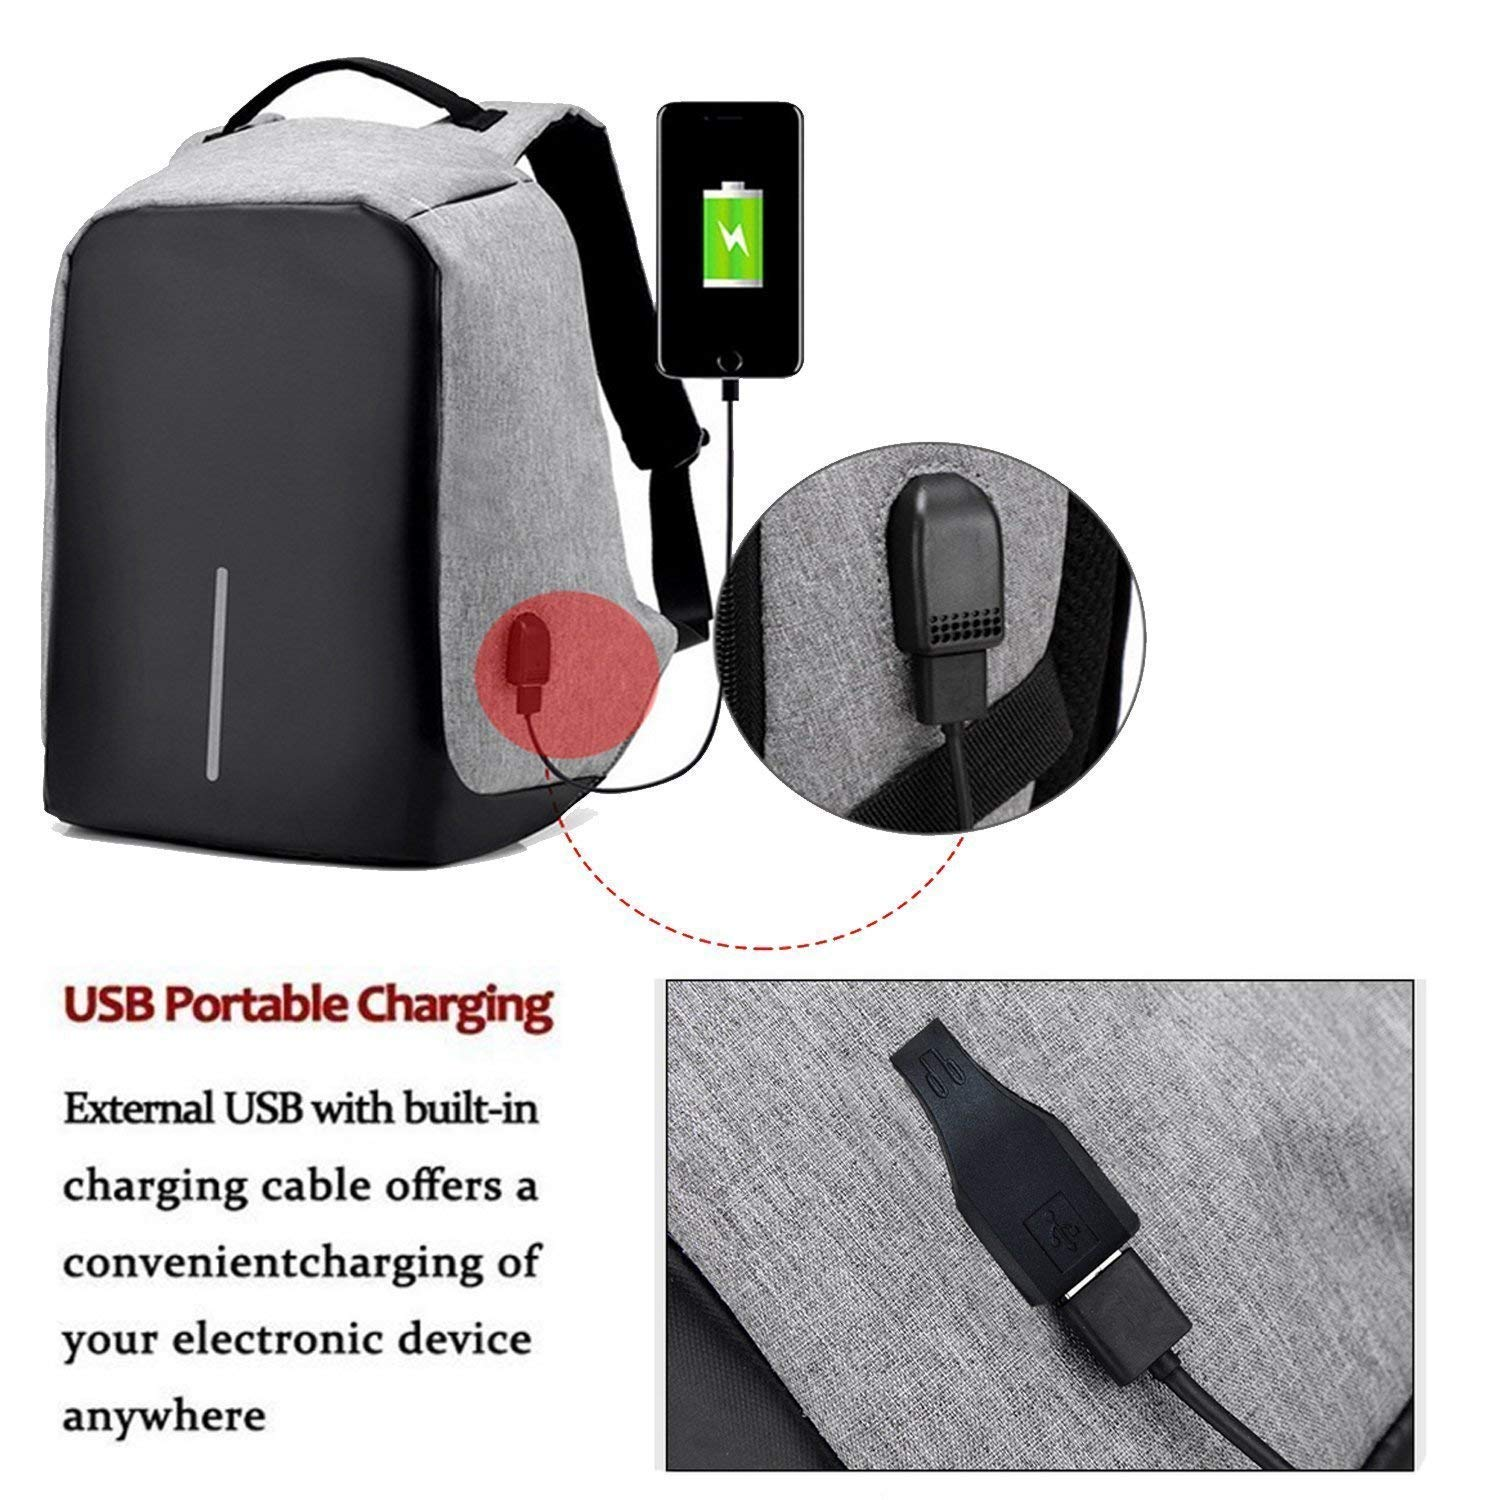 Buddymate BM25 Anti-Theft Water Resistant USB Charging Port Laptop Backpack  for School,Office   College (Assorted Colour)  Amazon.in  Bags, ... 548b118c34